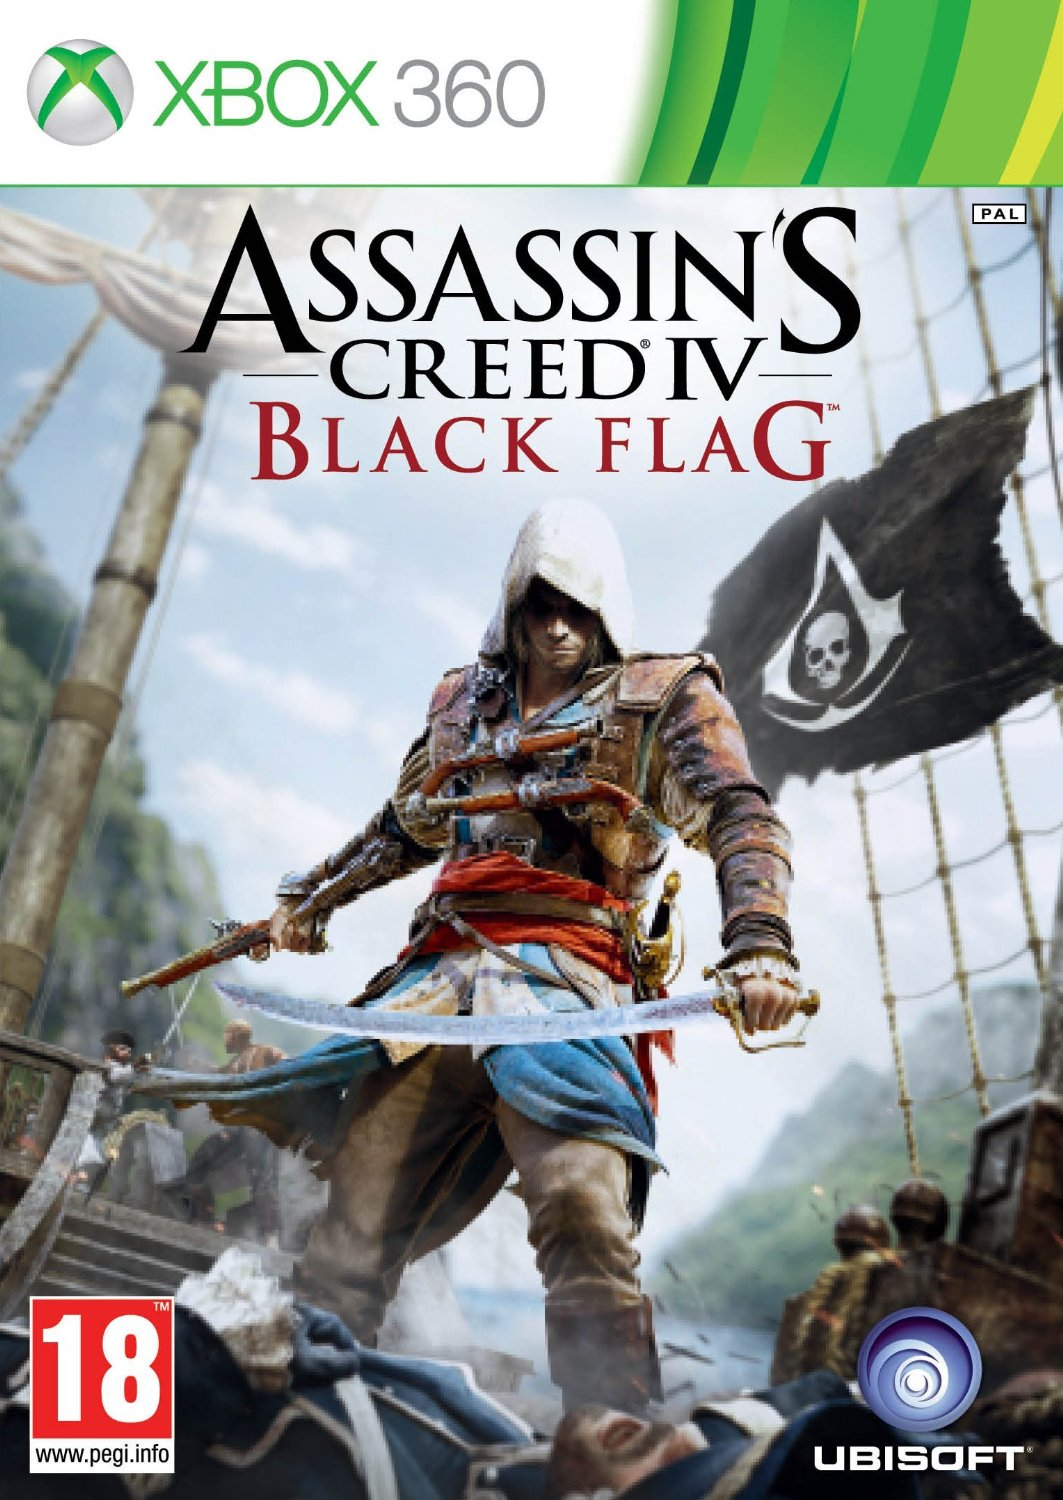 Assassin´s Creed 4+7 games | Xbox 360 | Shared account